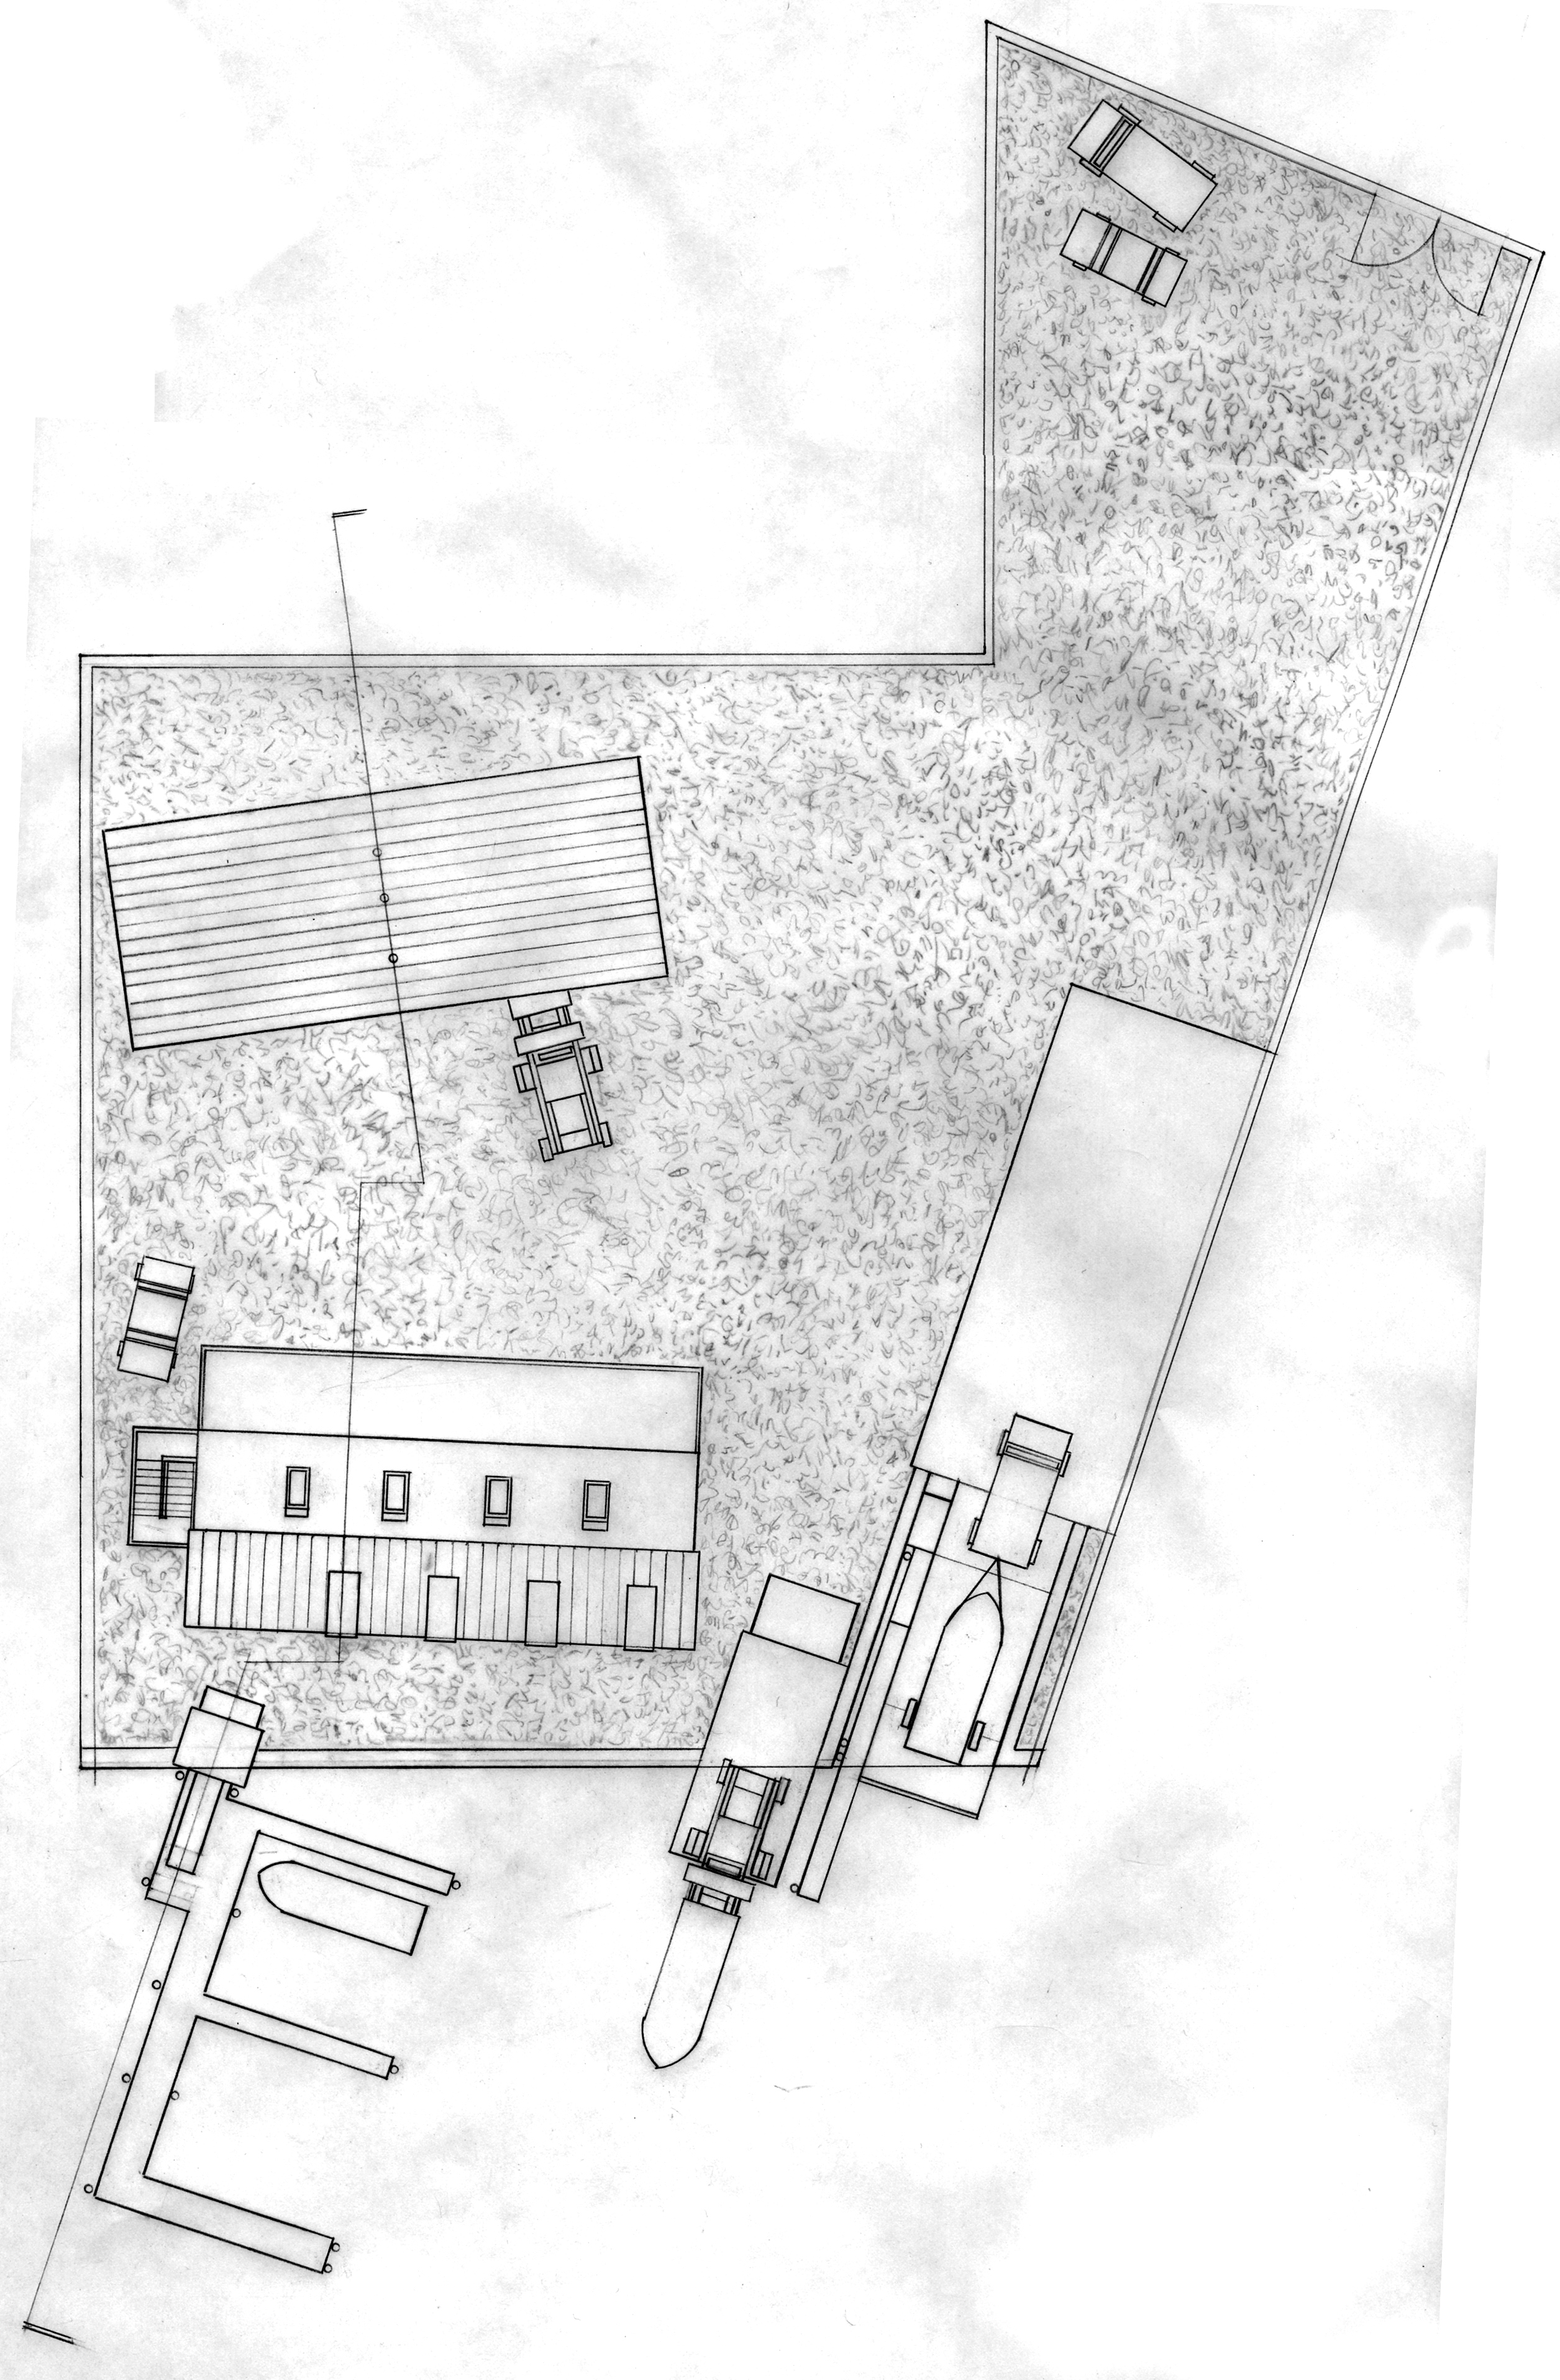 Hurricane House site plan (2001)